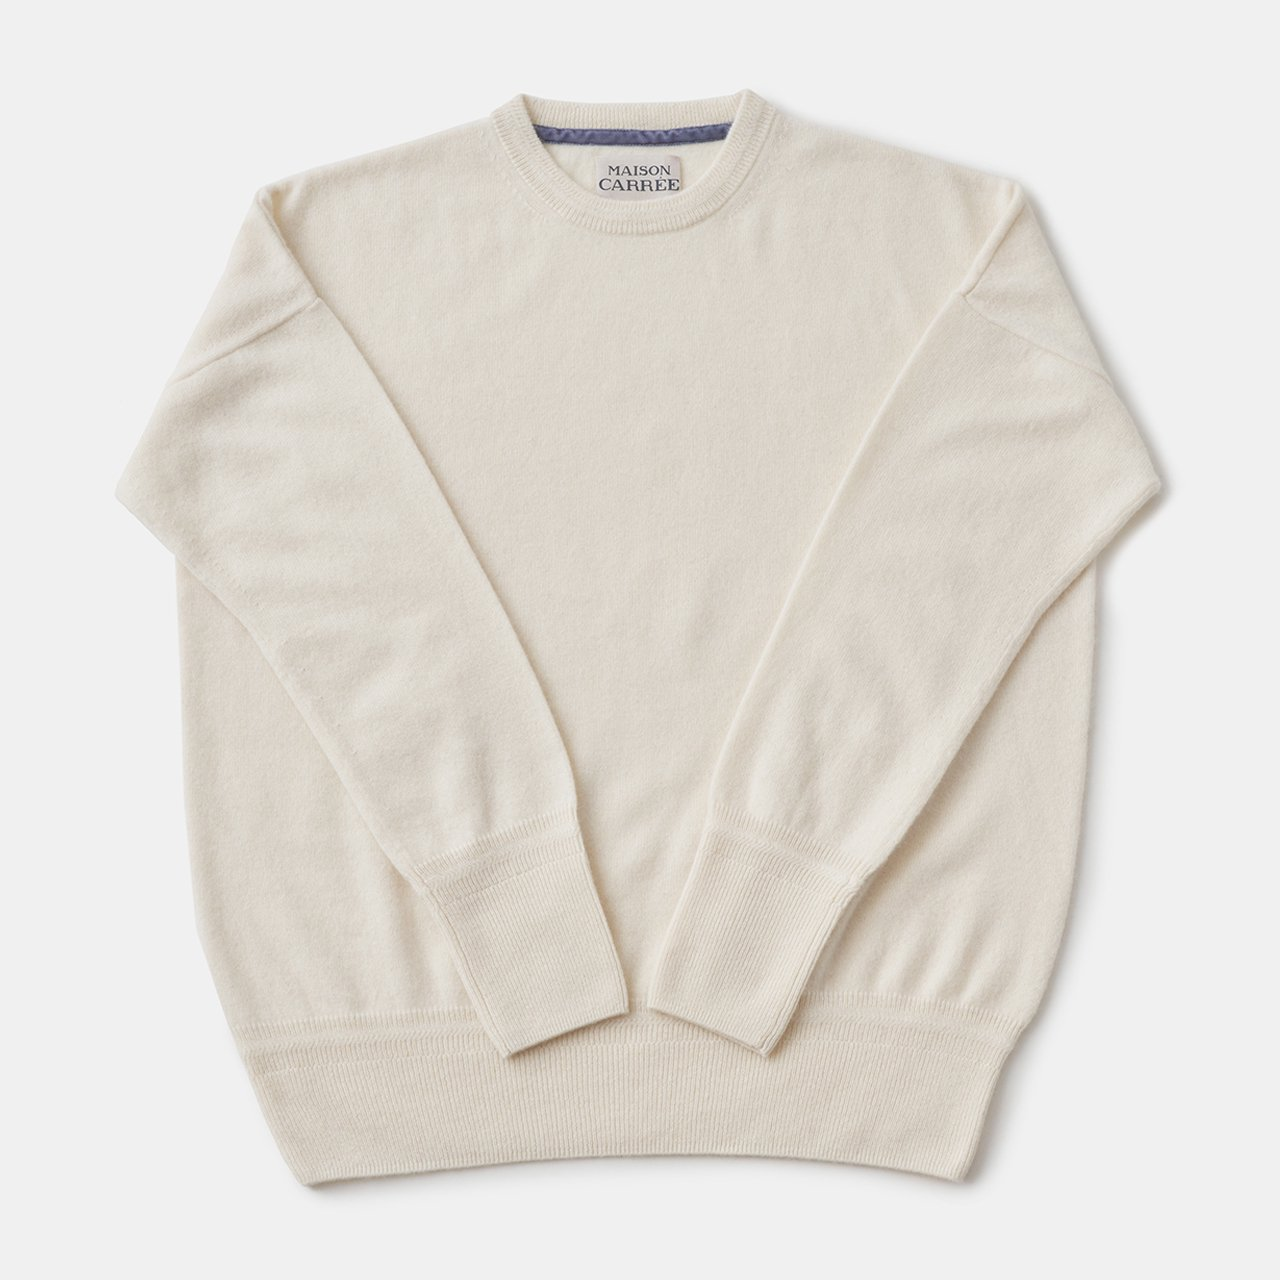 CASHMERE Basic Tops<BR>IVORY